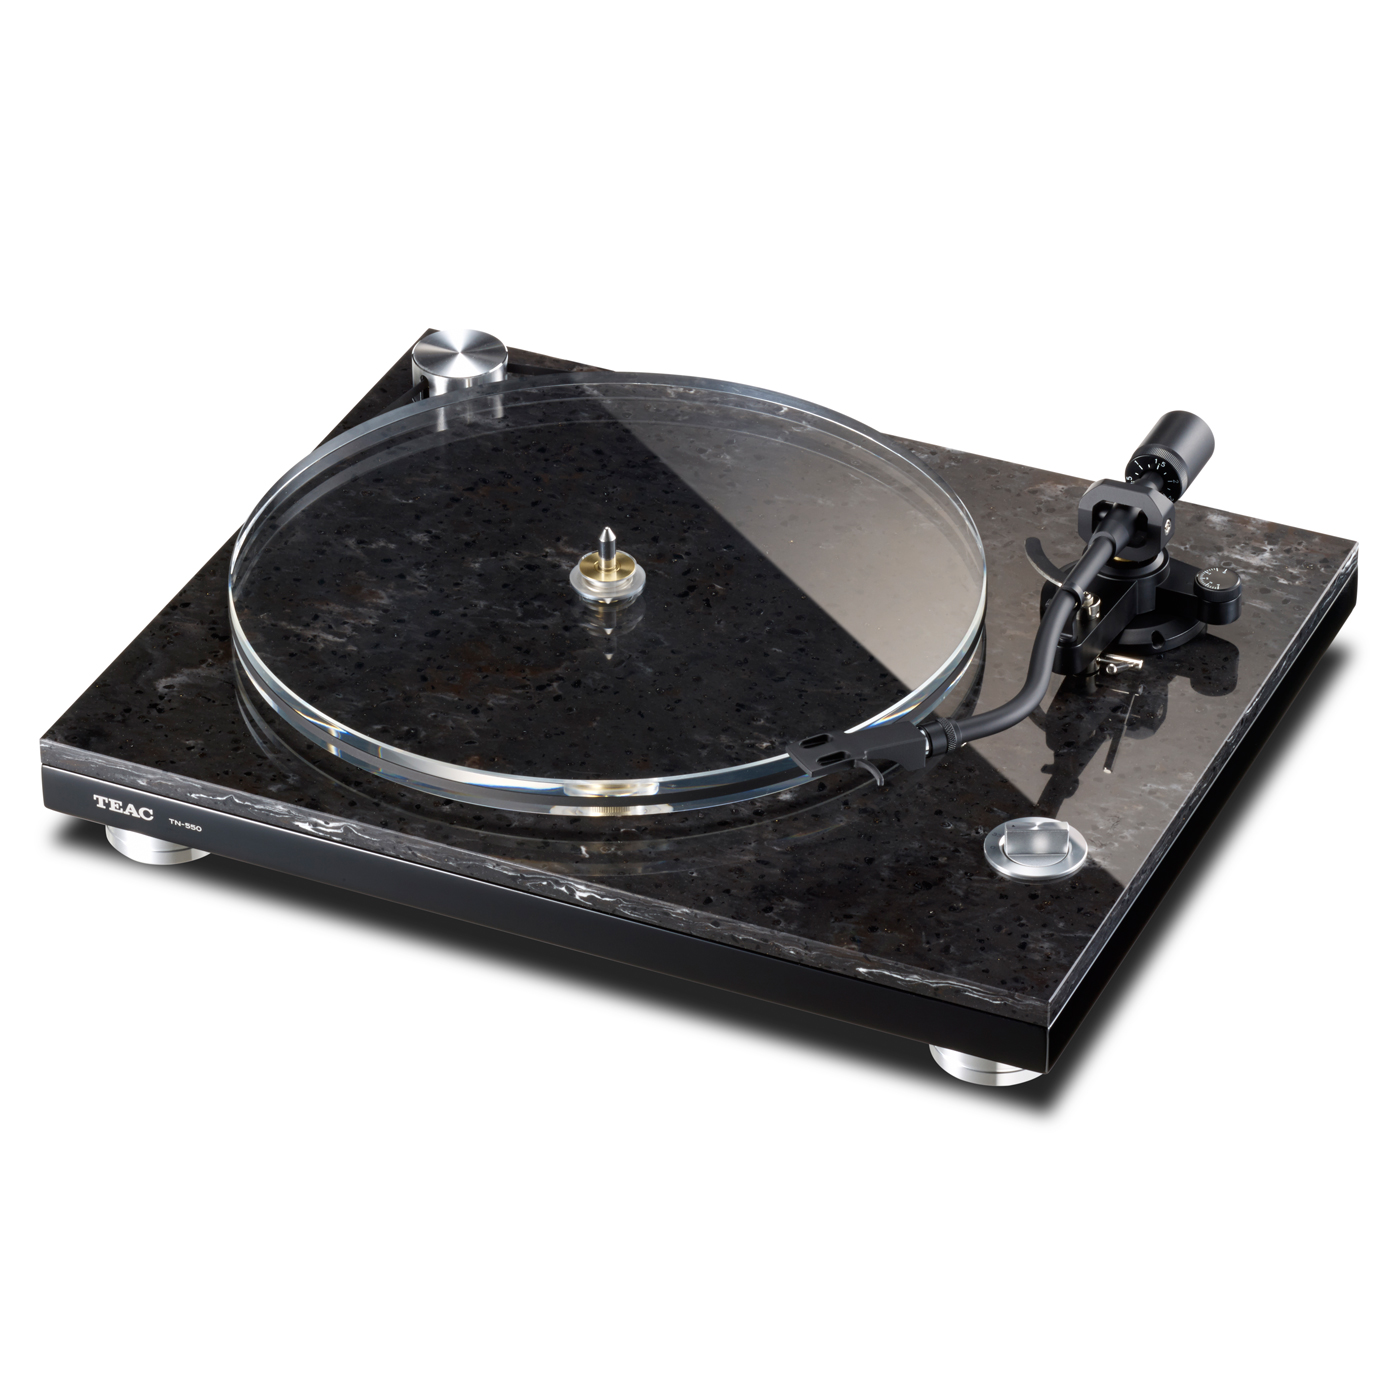 TEAC TN-550 2-Speed Analog Turntable with Cartridge by TEAC